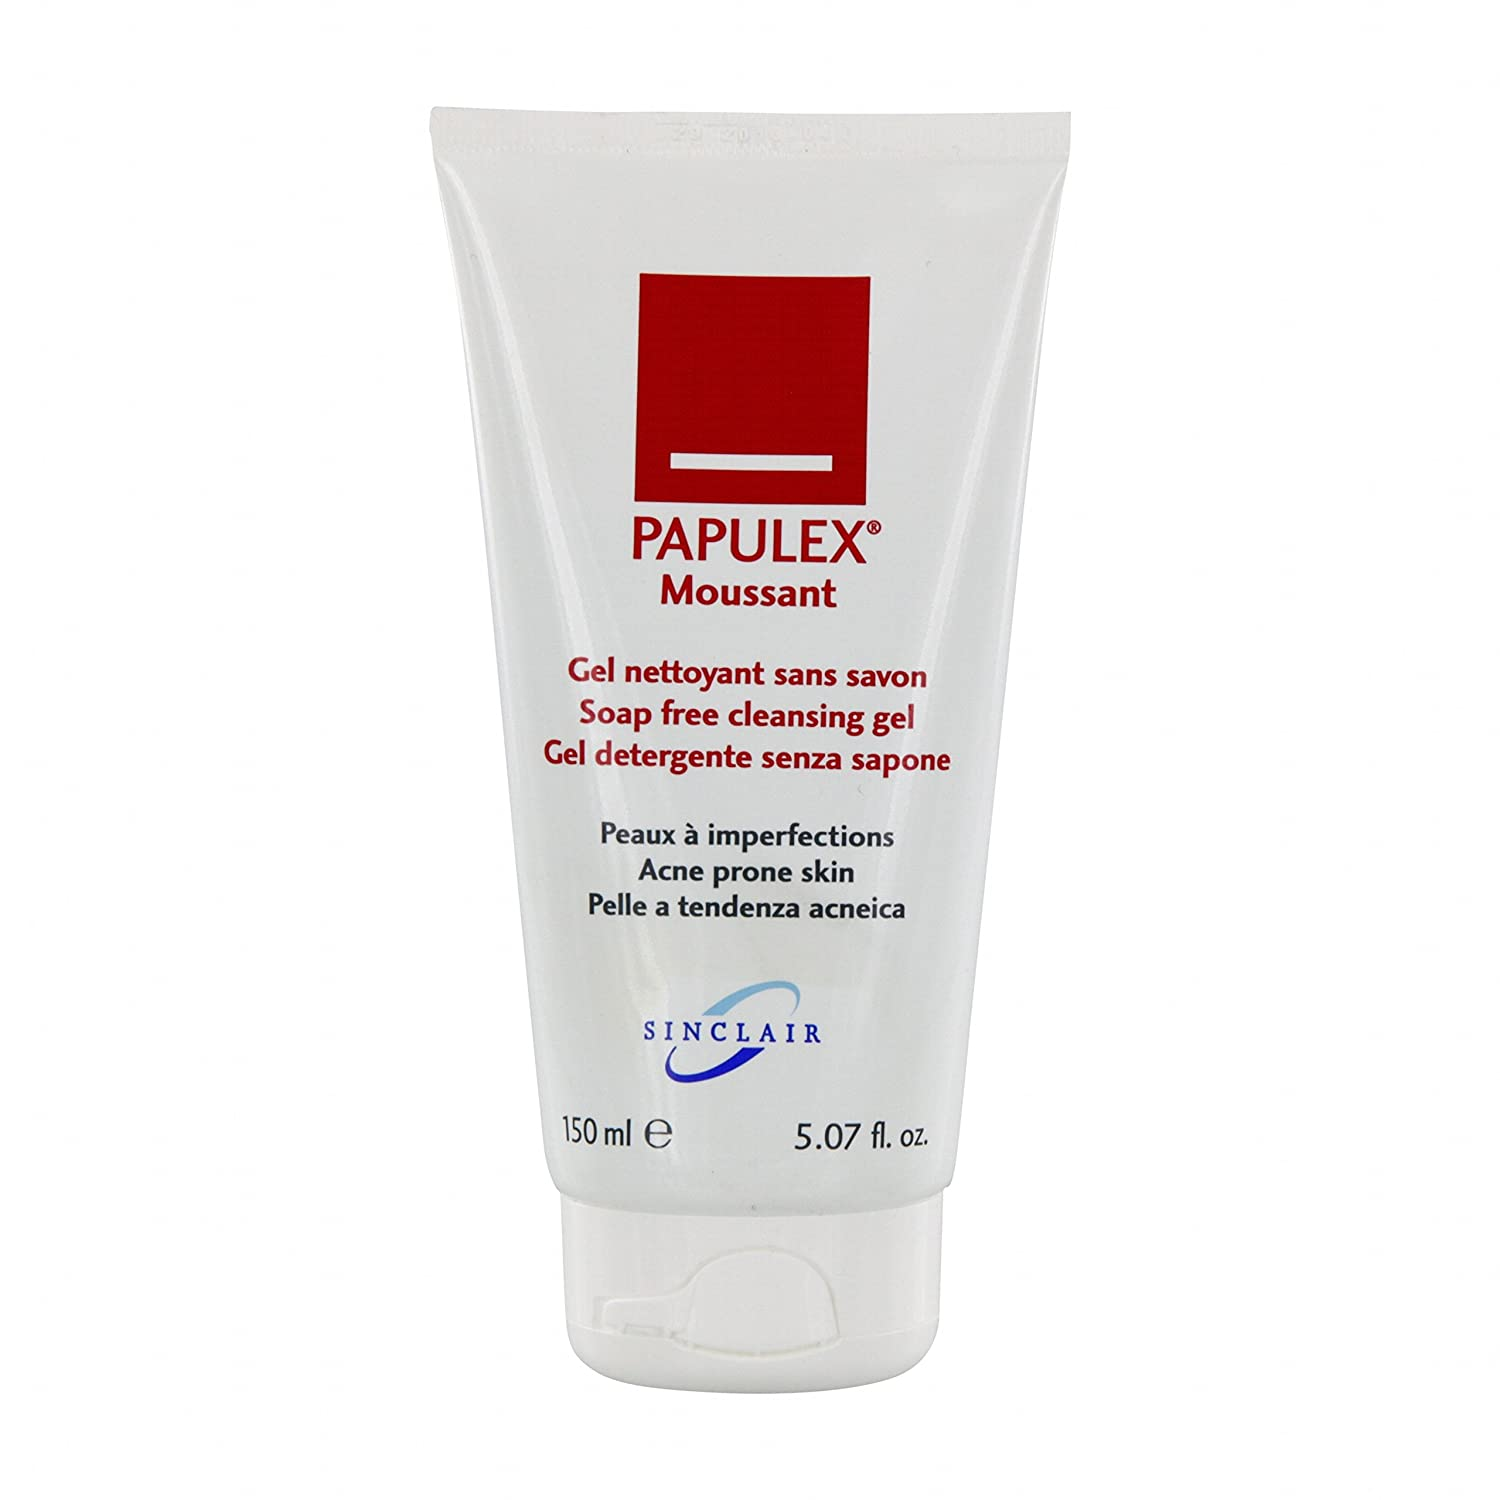 Papulex mousse Alliance Pharmaceuticals 0107961 7623922